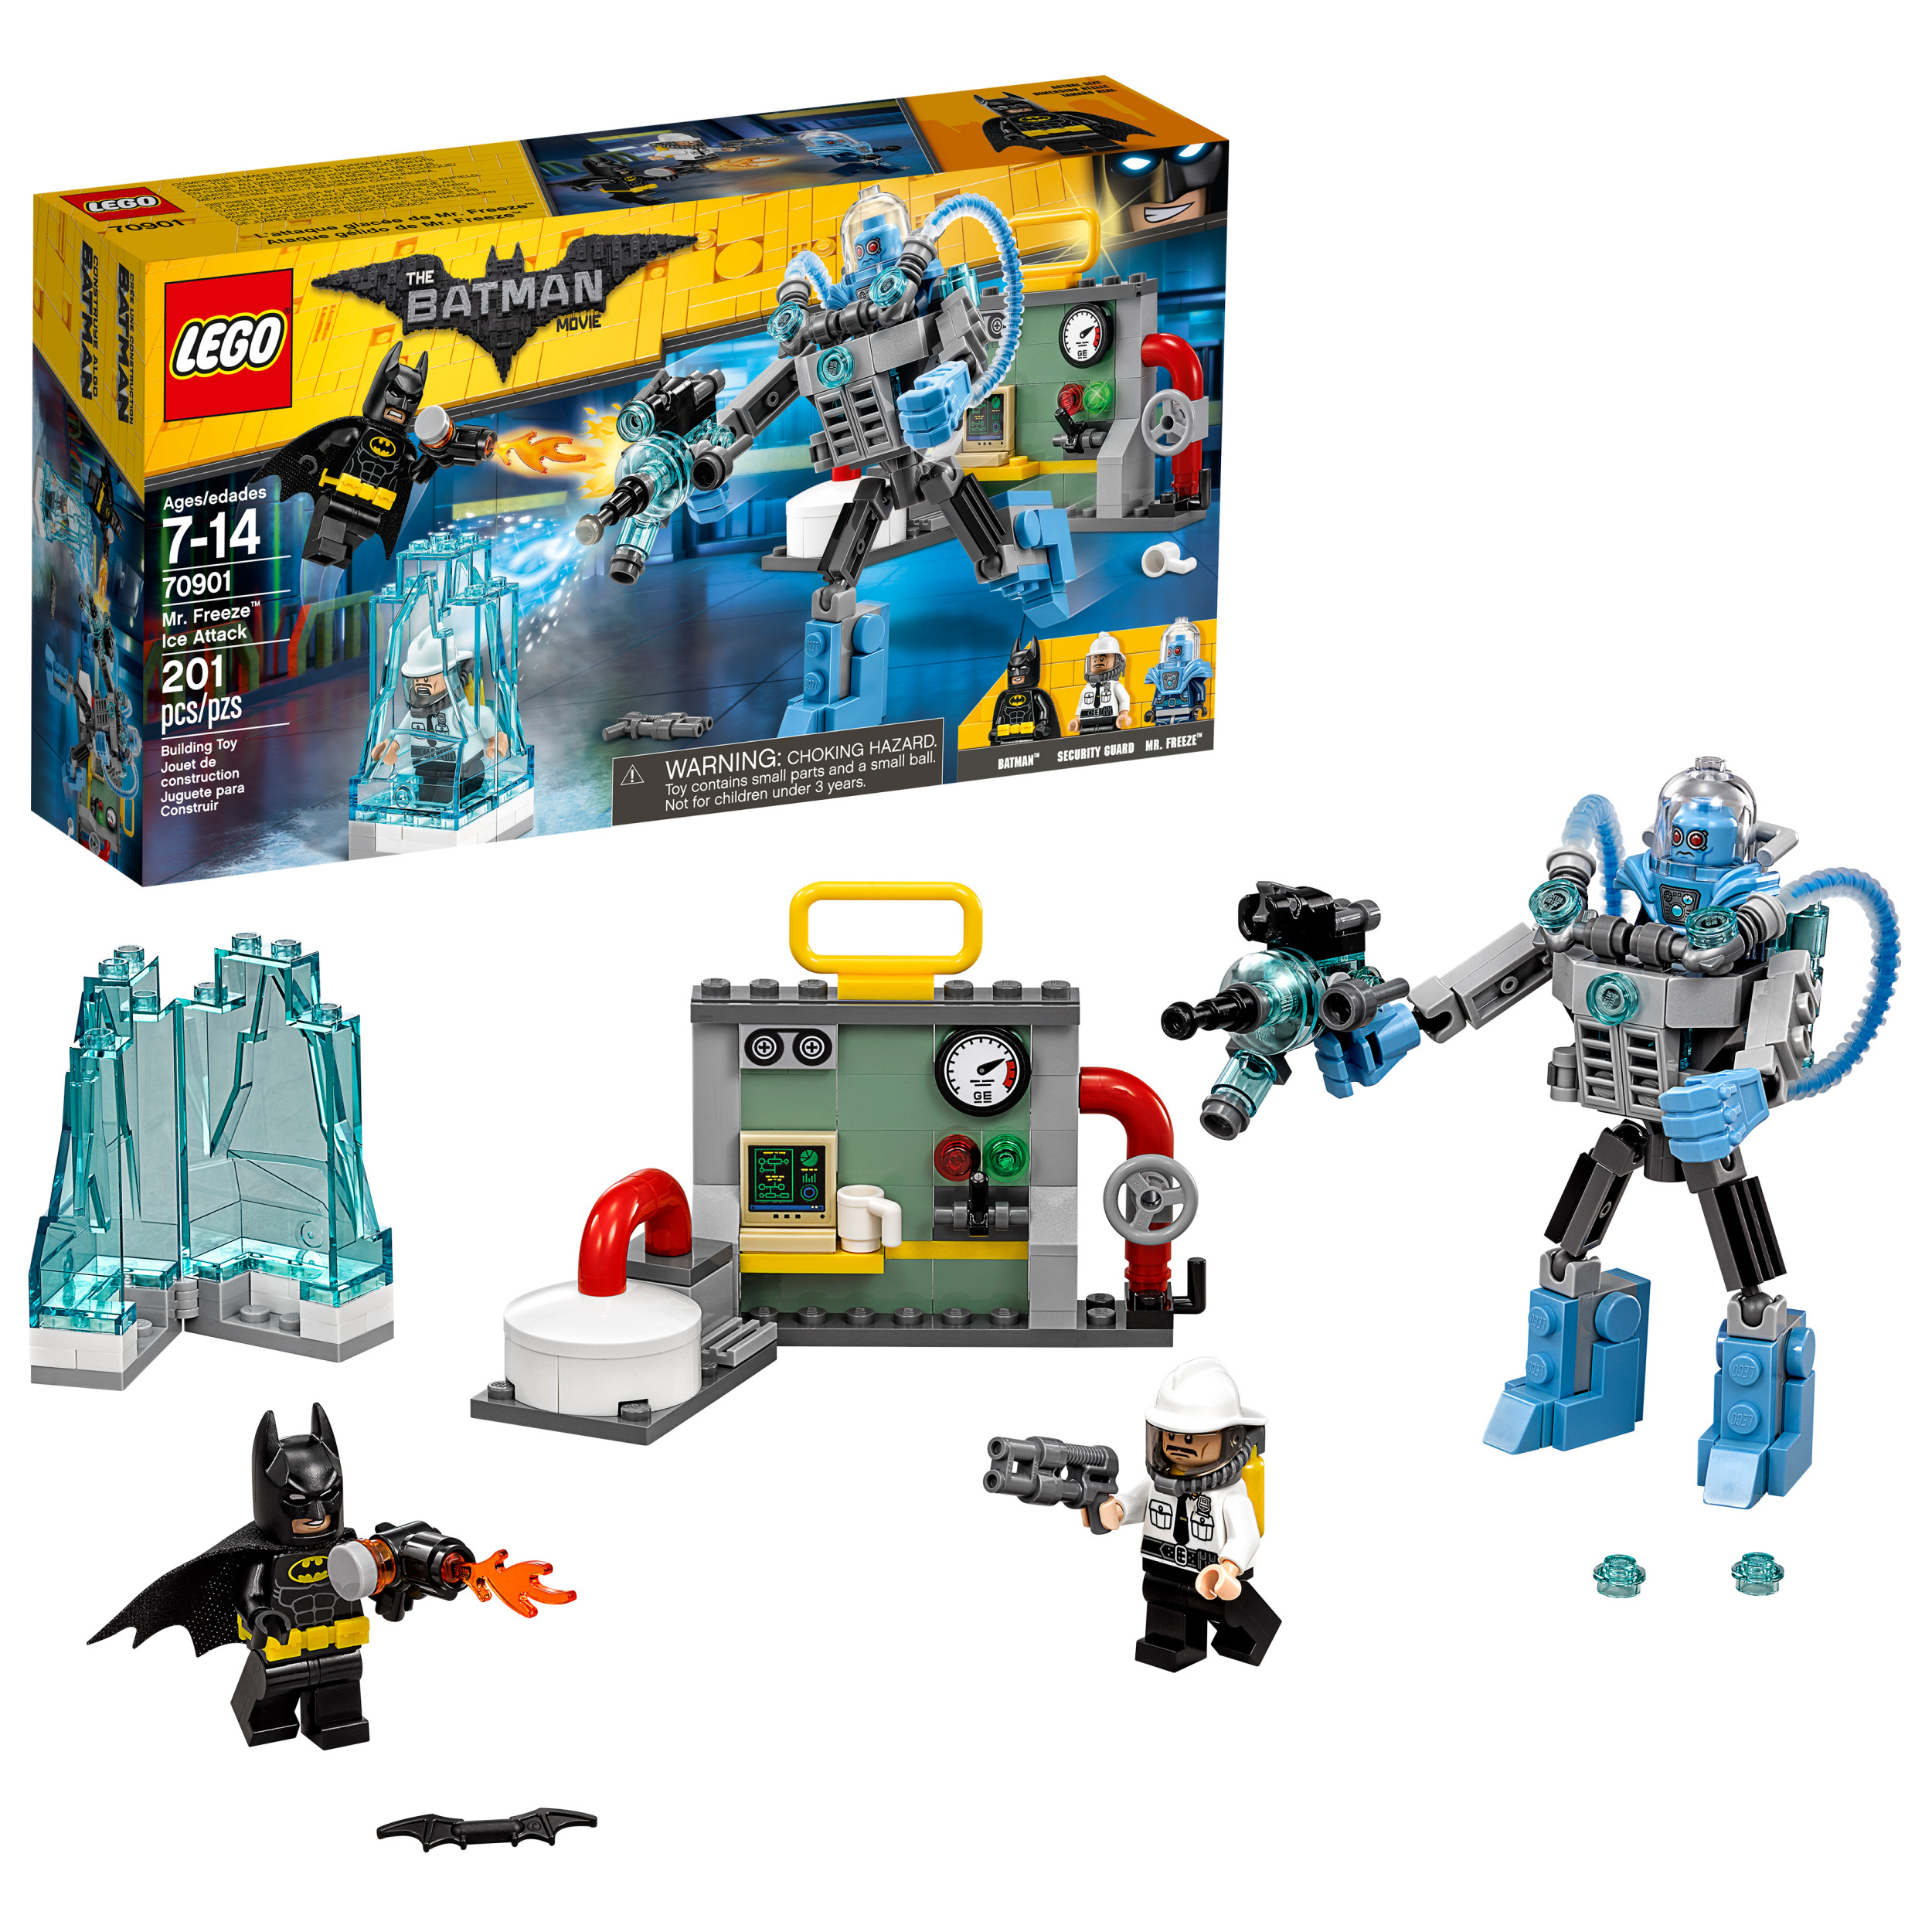 The LEGO Batman Movie - Mr. Freeze Ice Attack (70901)